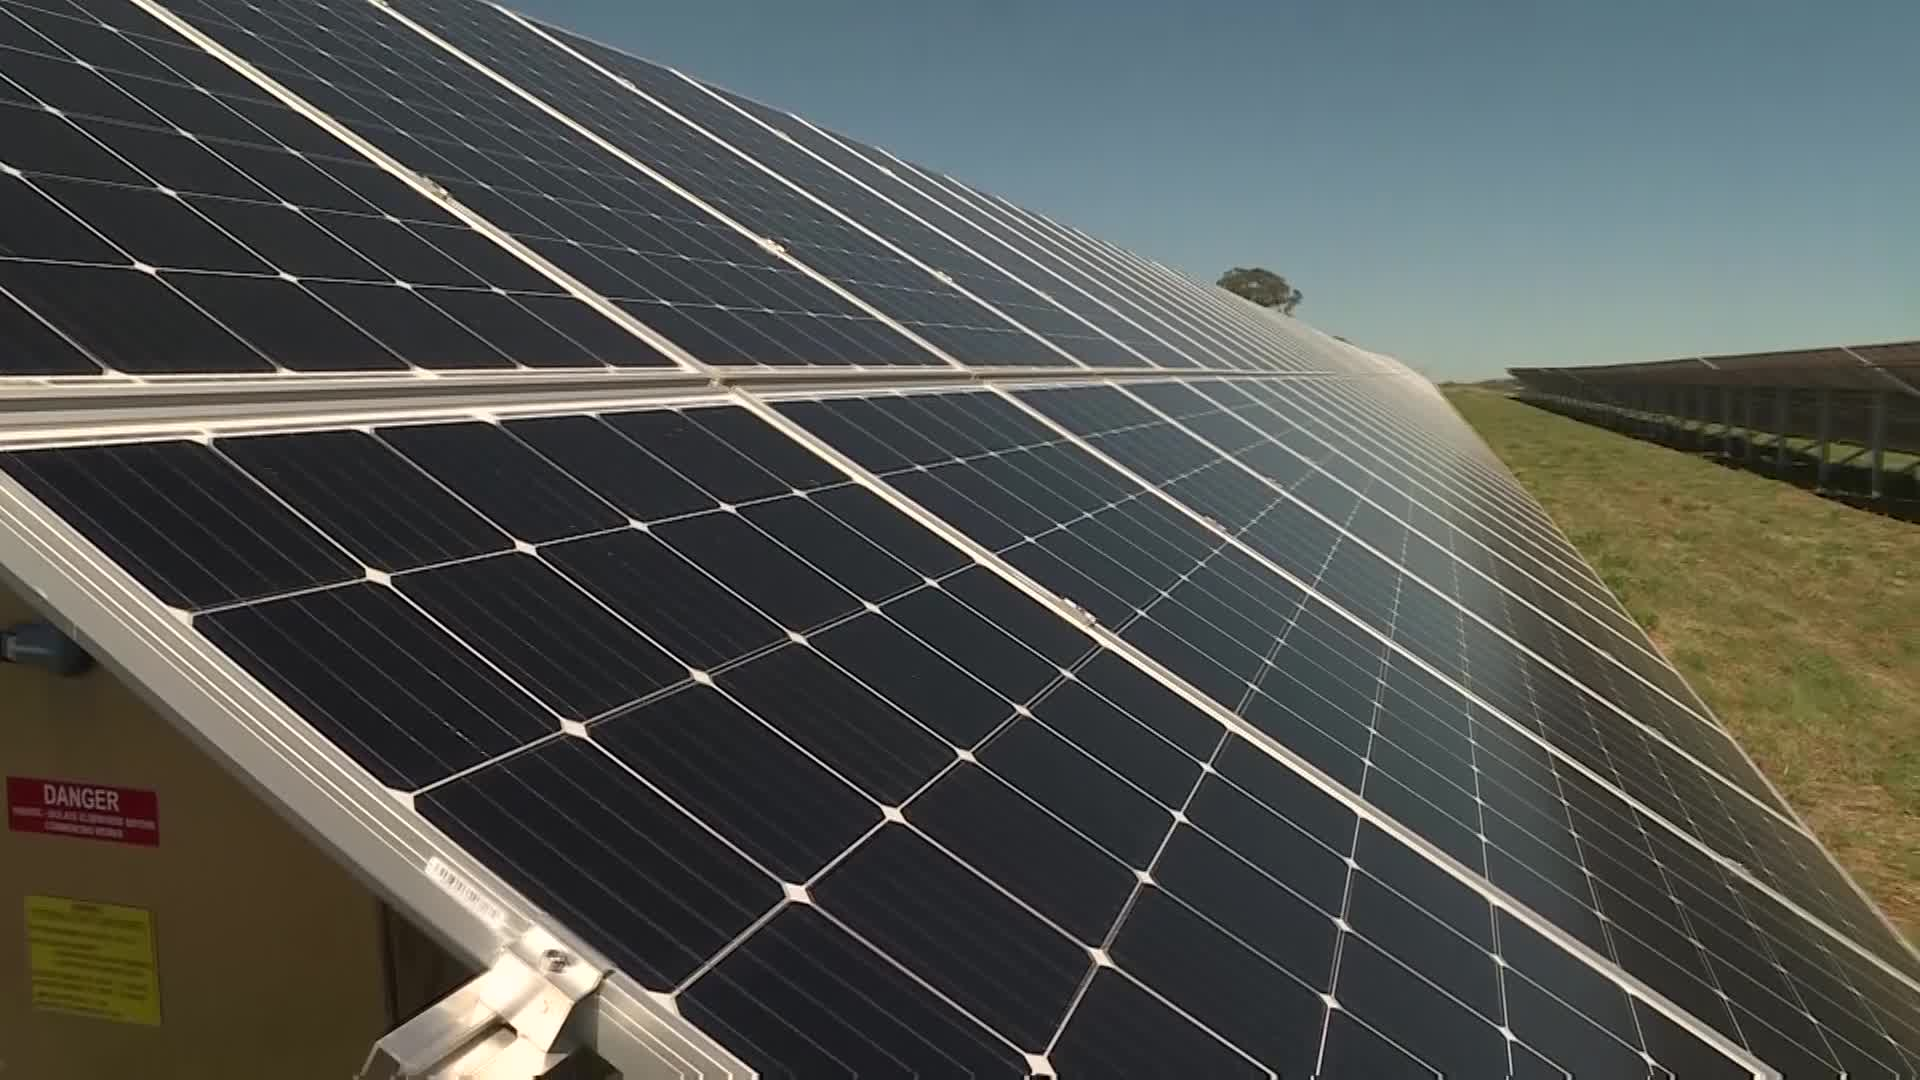 KERC Discom Approved Tariff of ₹8.40/kWh for Extended Solar Project